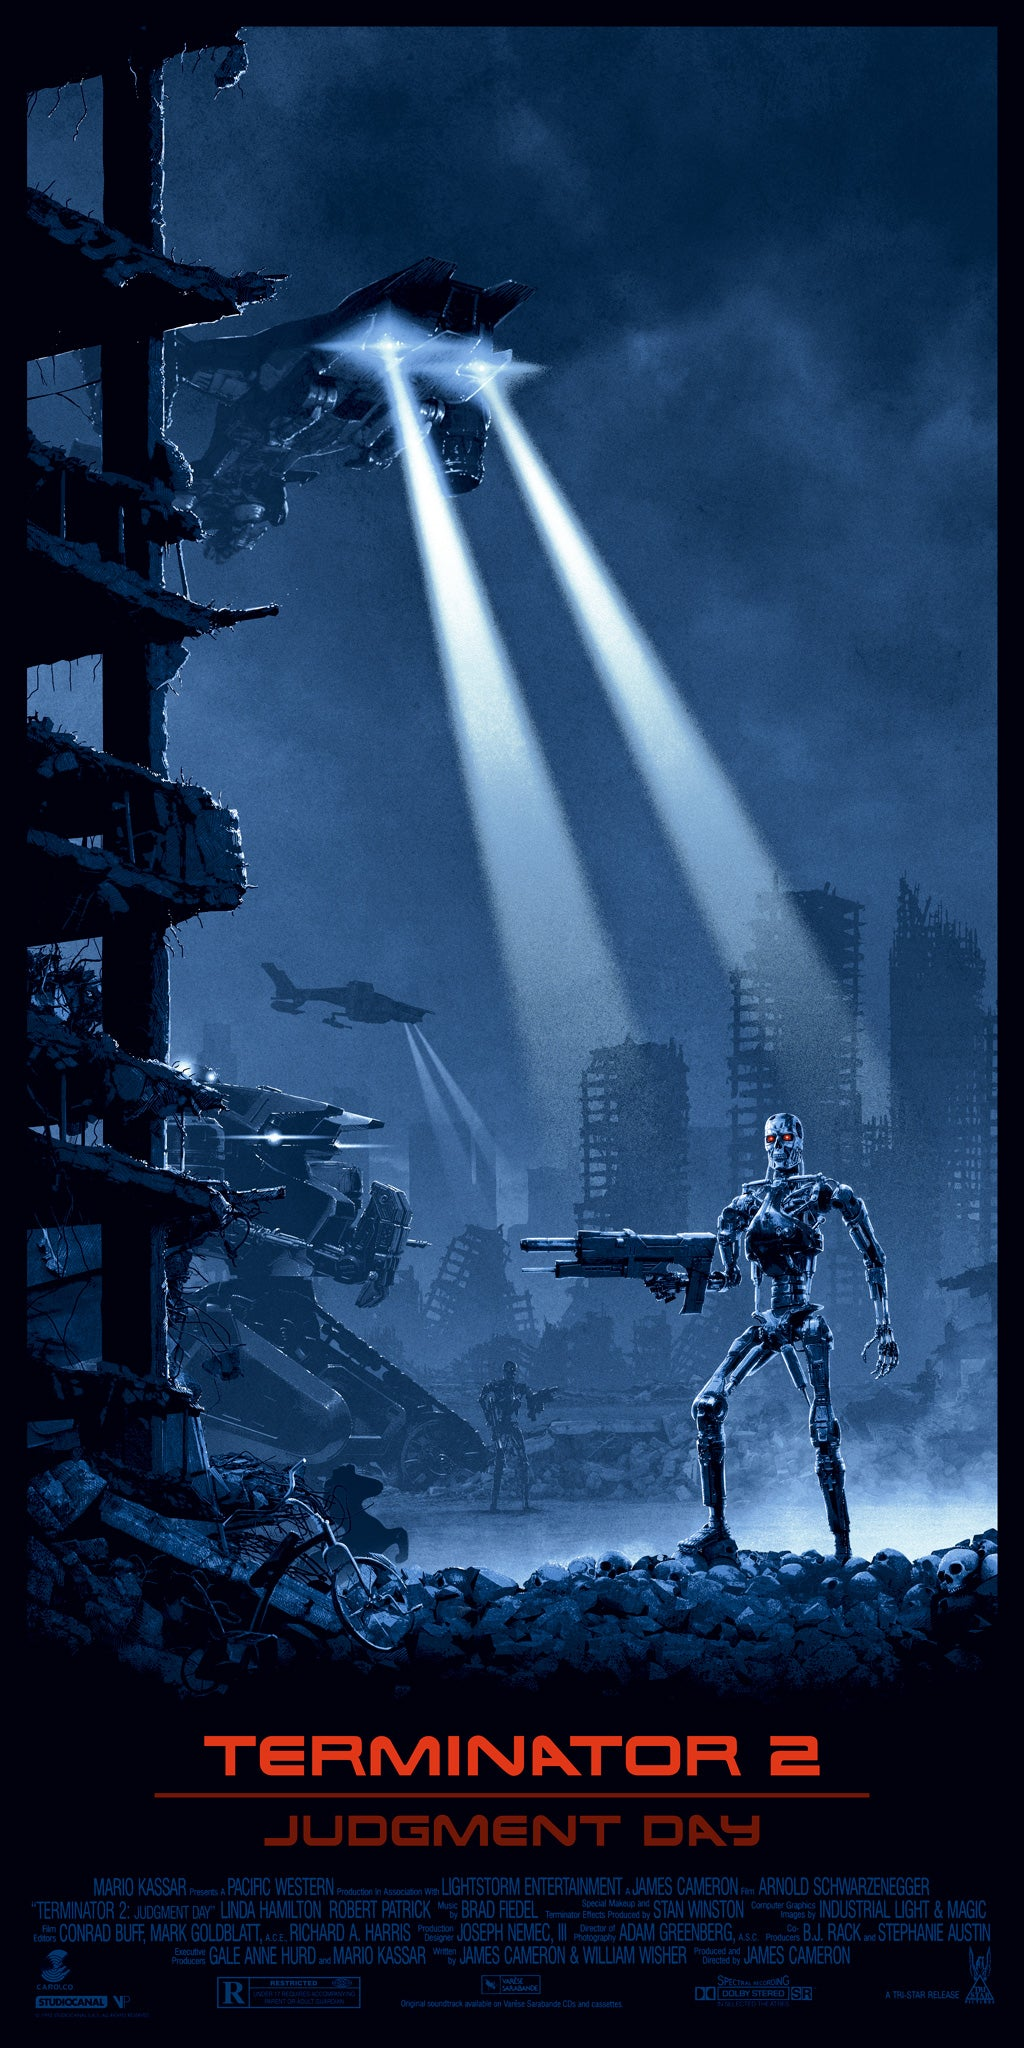 Terminator 2: Judgement Day - Regular